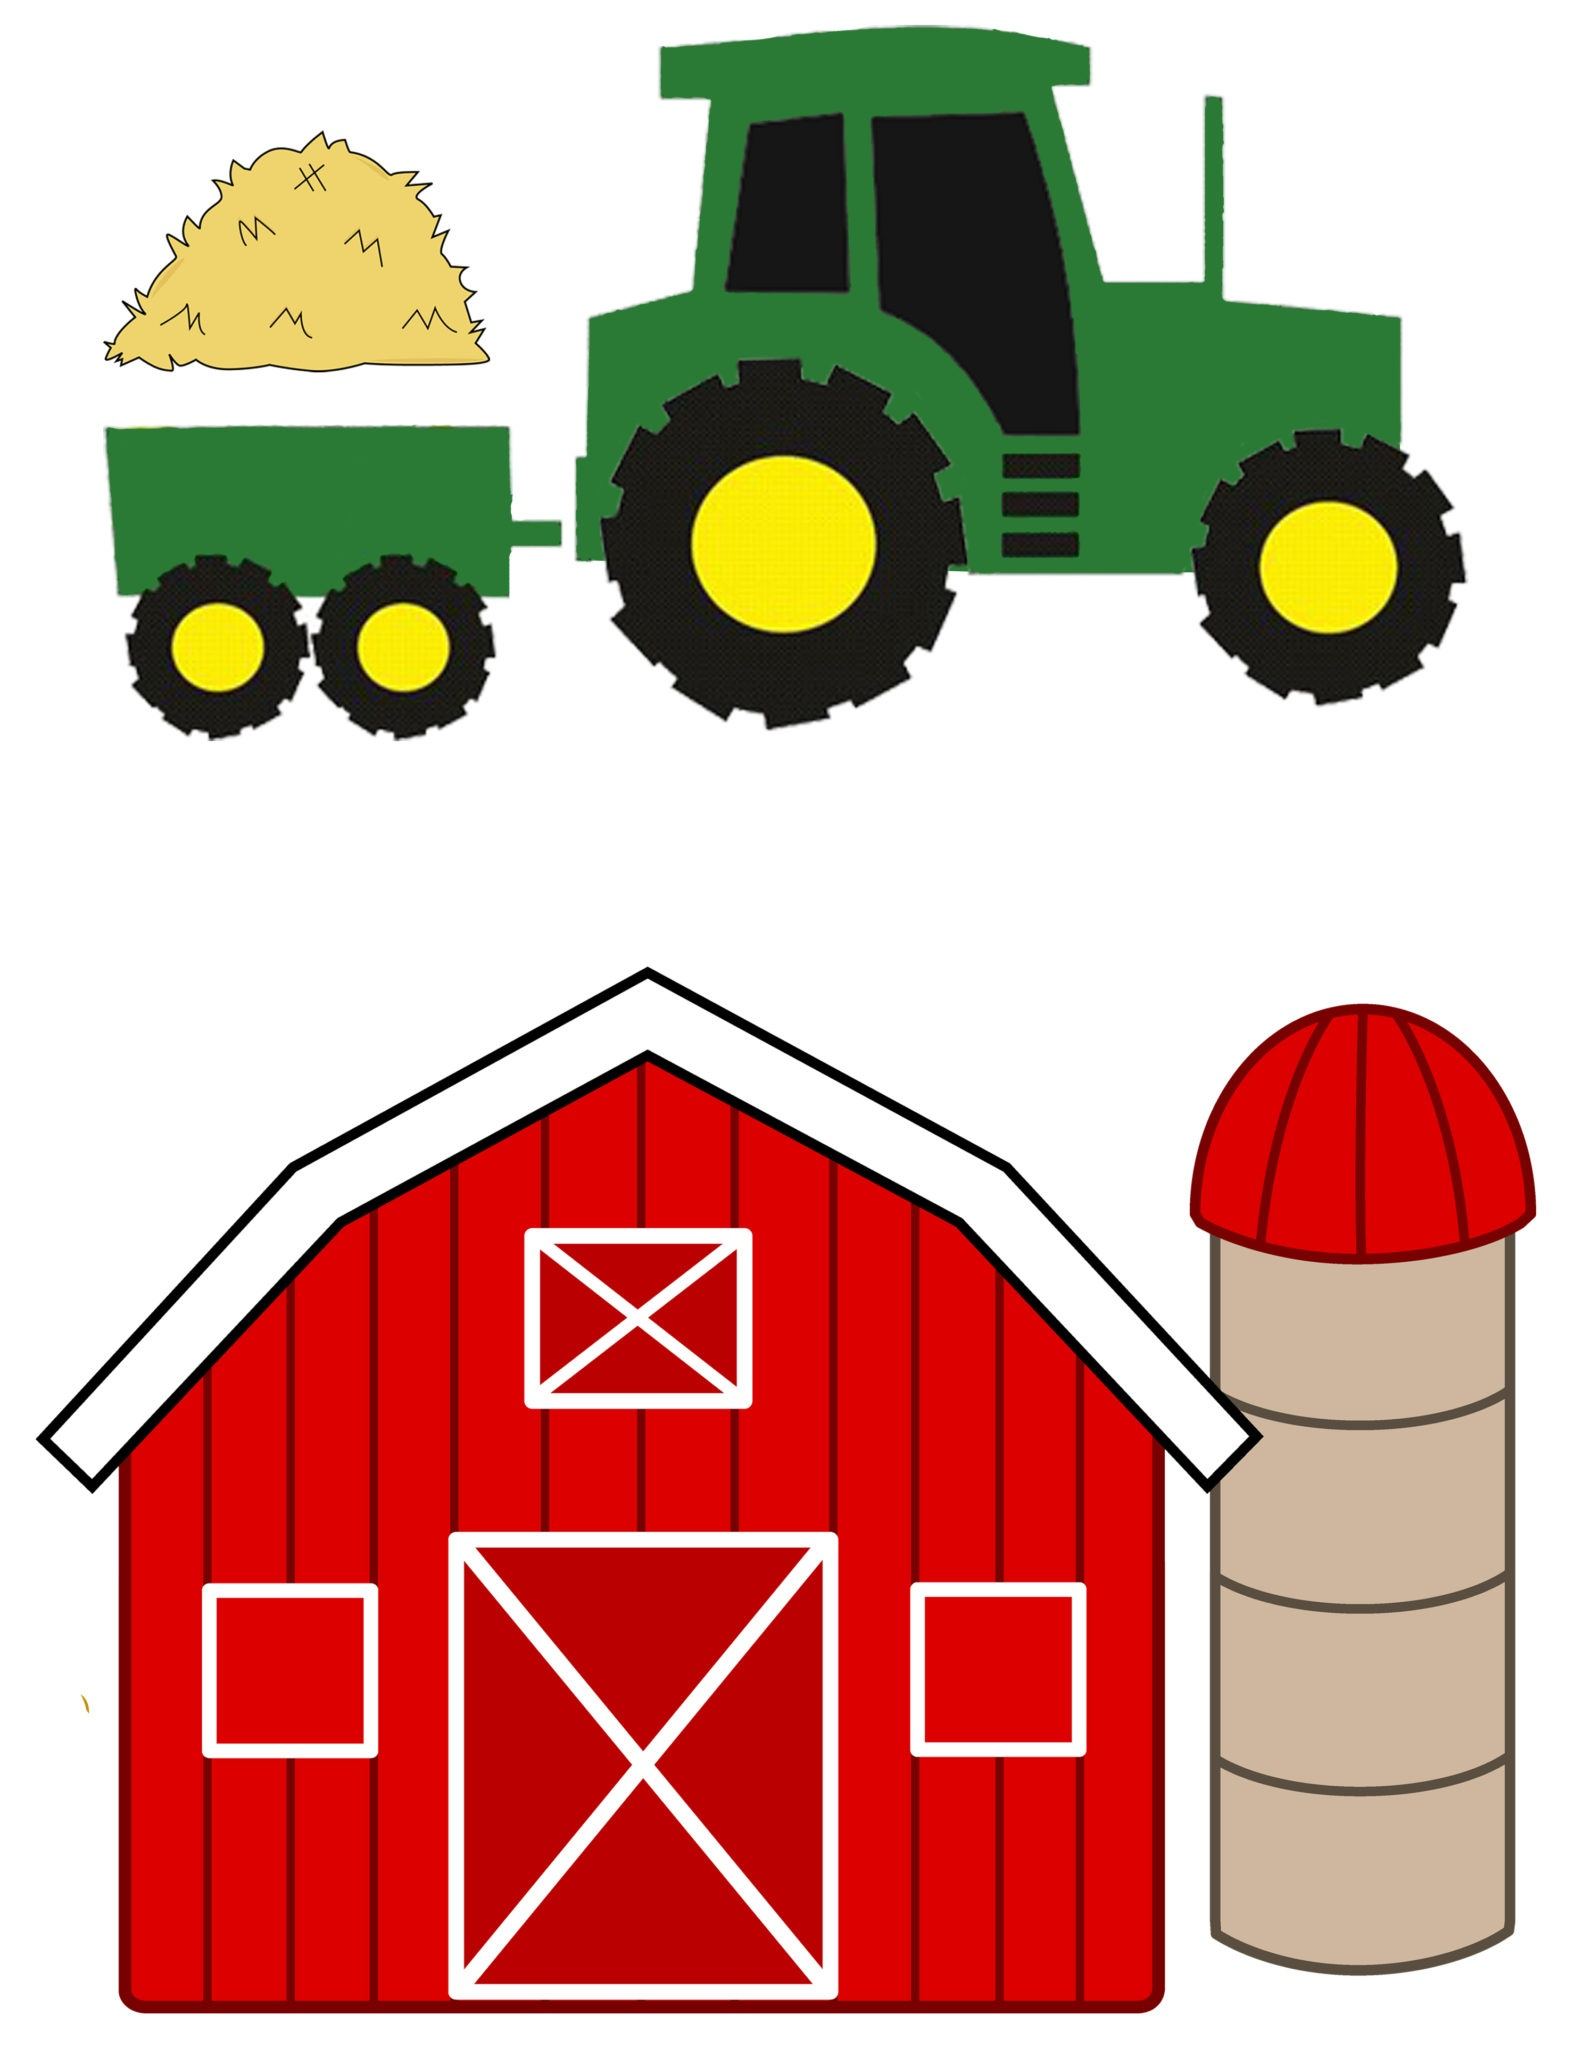 Farm Animal Templates To Cut Out - Kaza.psstech.co - Free Printable Farm Animal Cutouts